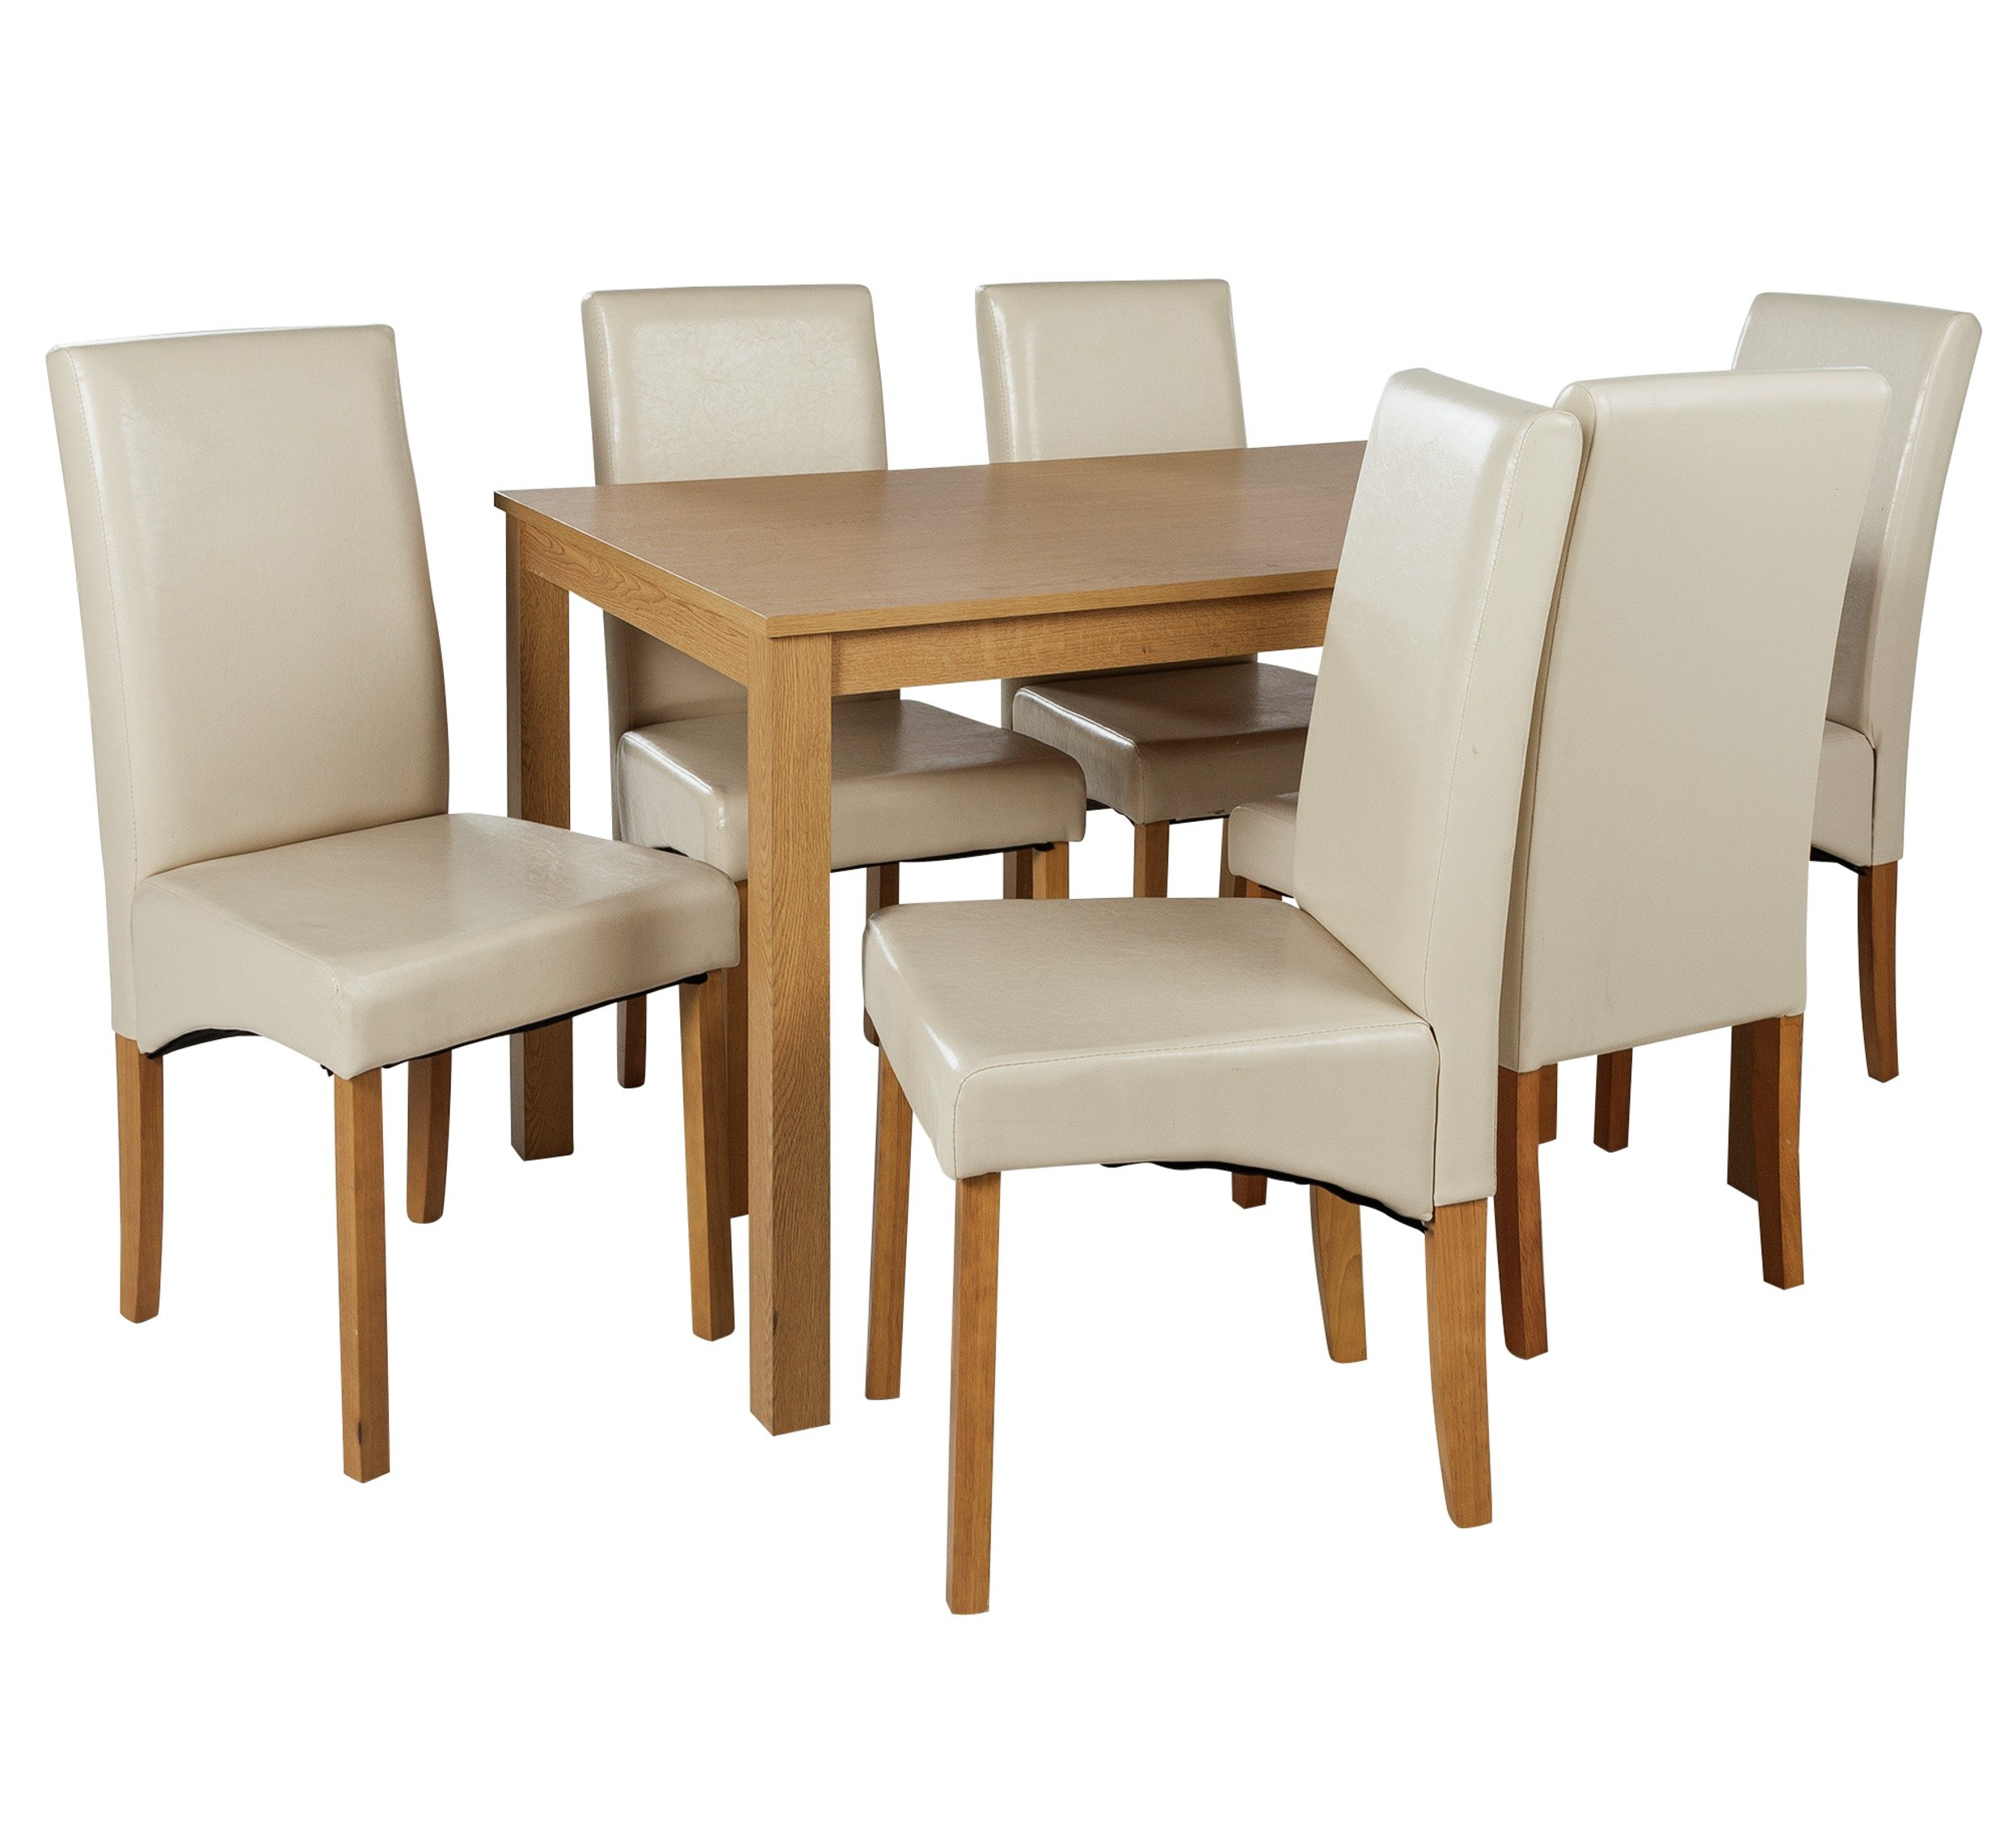 Home bromham oak effect dining table 6 chairs octer for 99 dining table